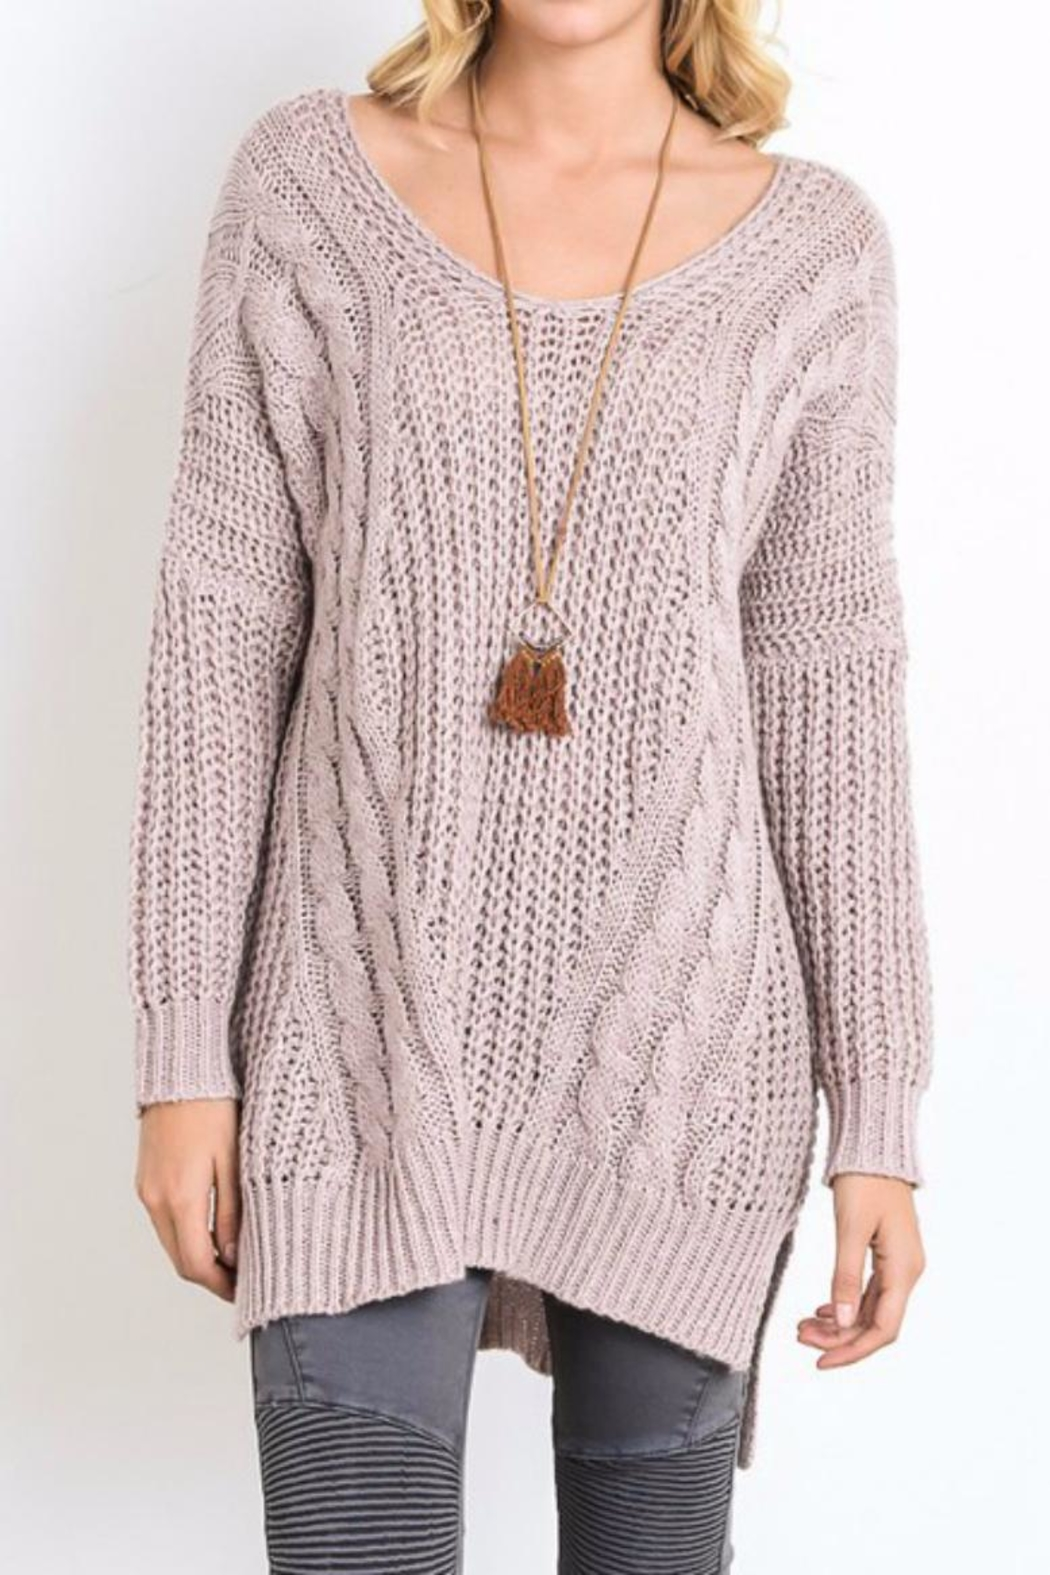 Wishlist Mauve Sweater Tunic Top from Tennessee by Threads ...